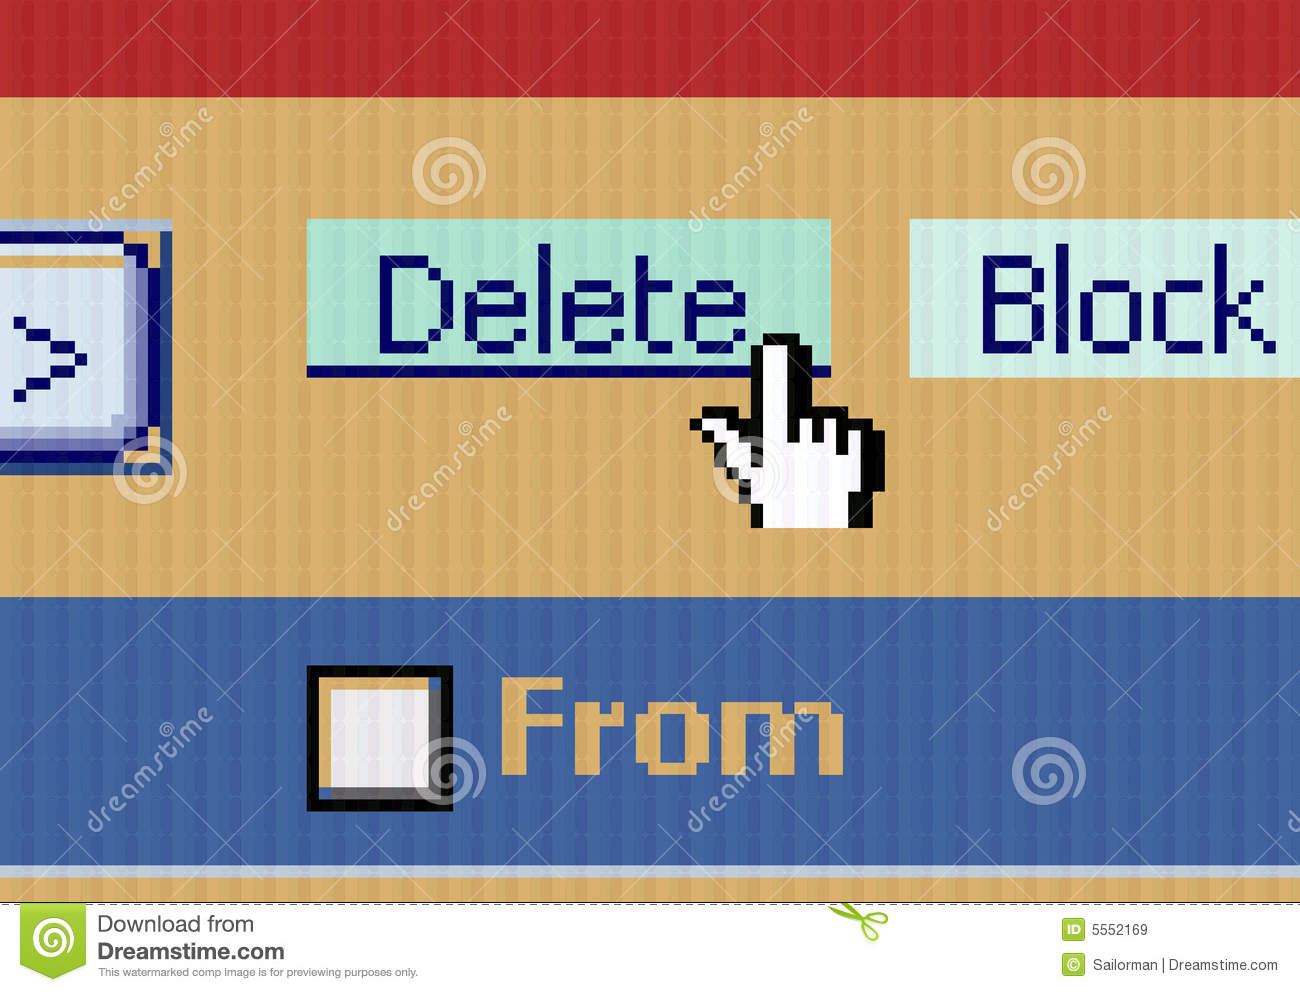 how to delete all junk files from computer usingcmd